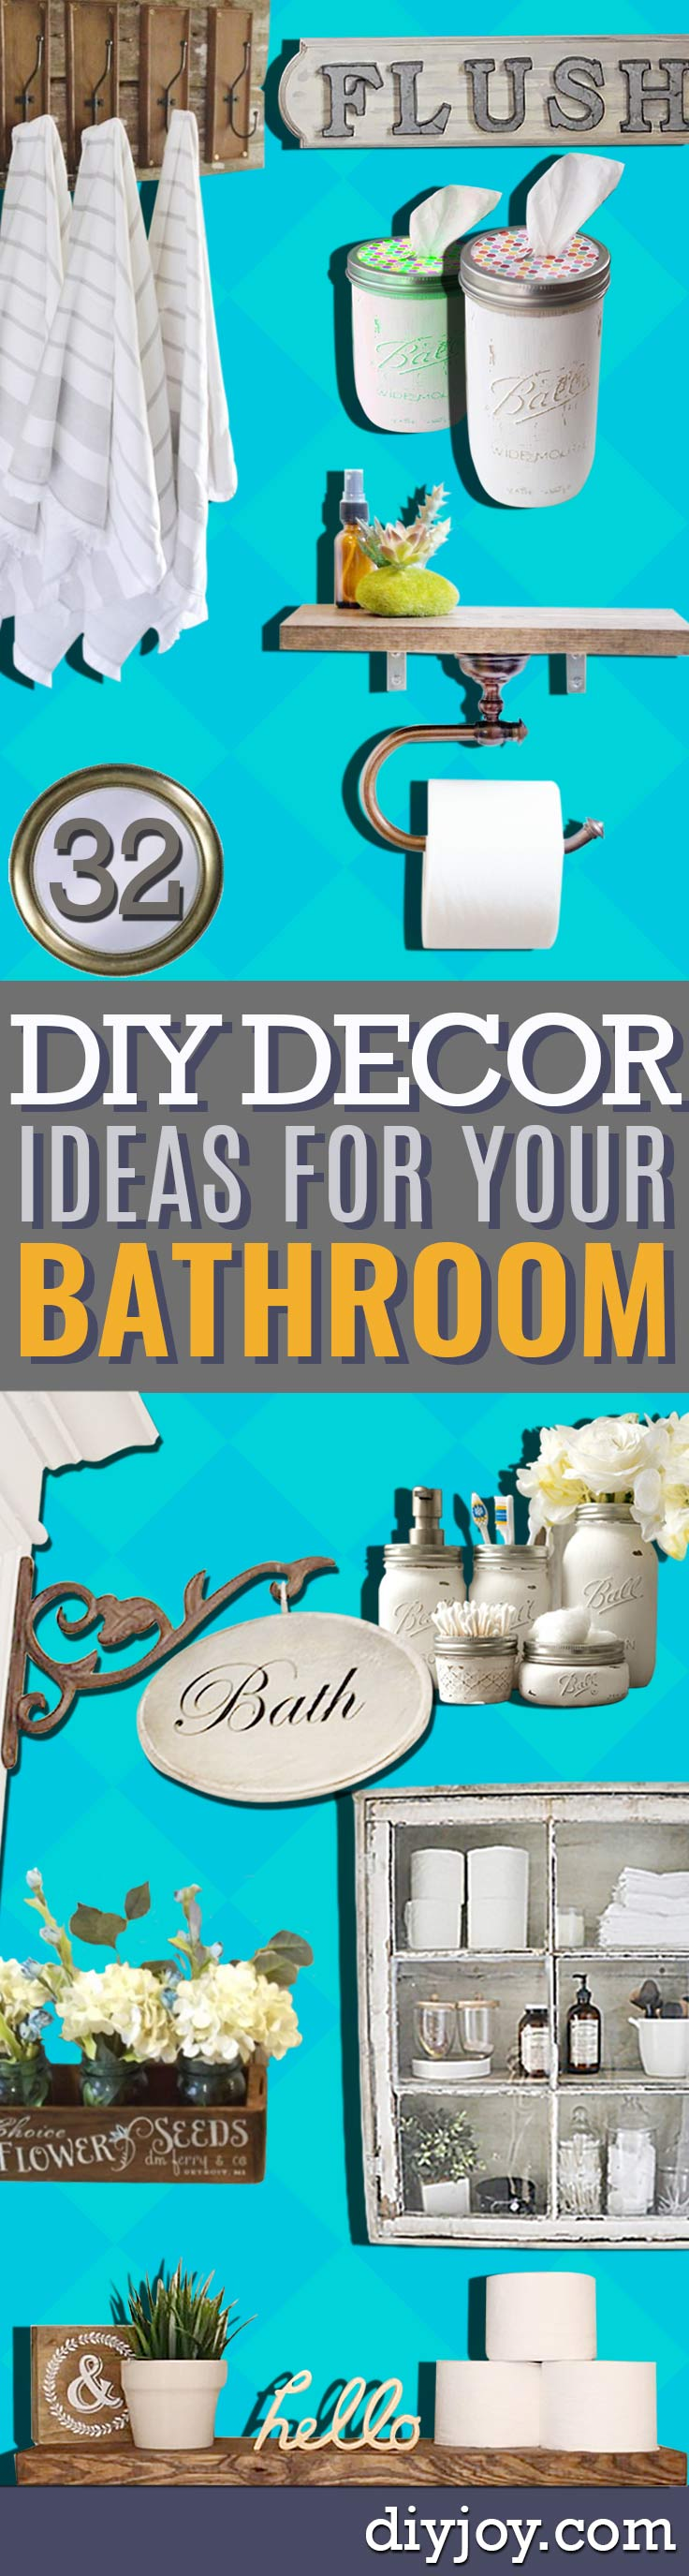 Diy Bathroom Decor 31 Brilliant Diy Decor Ideas For Your Bathroom Diy Joy